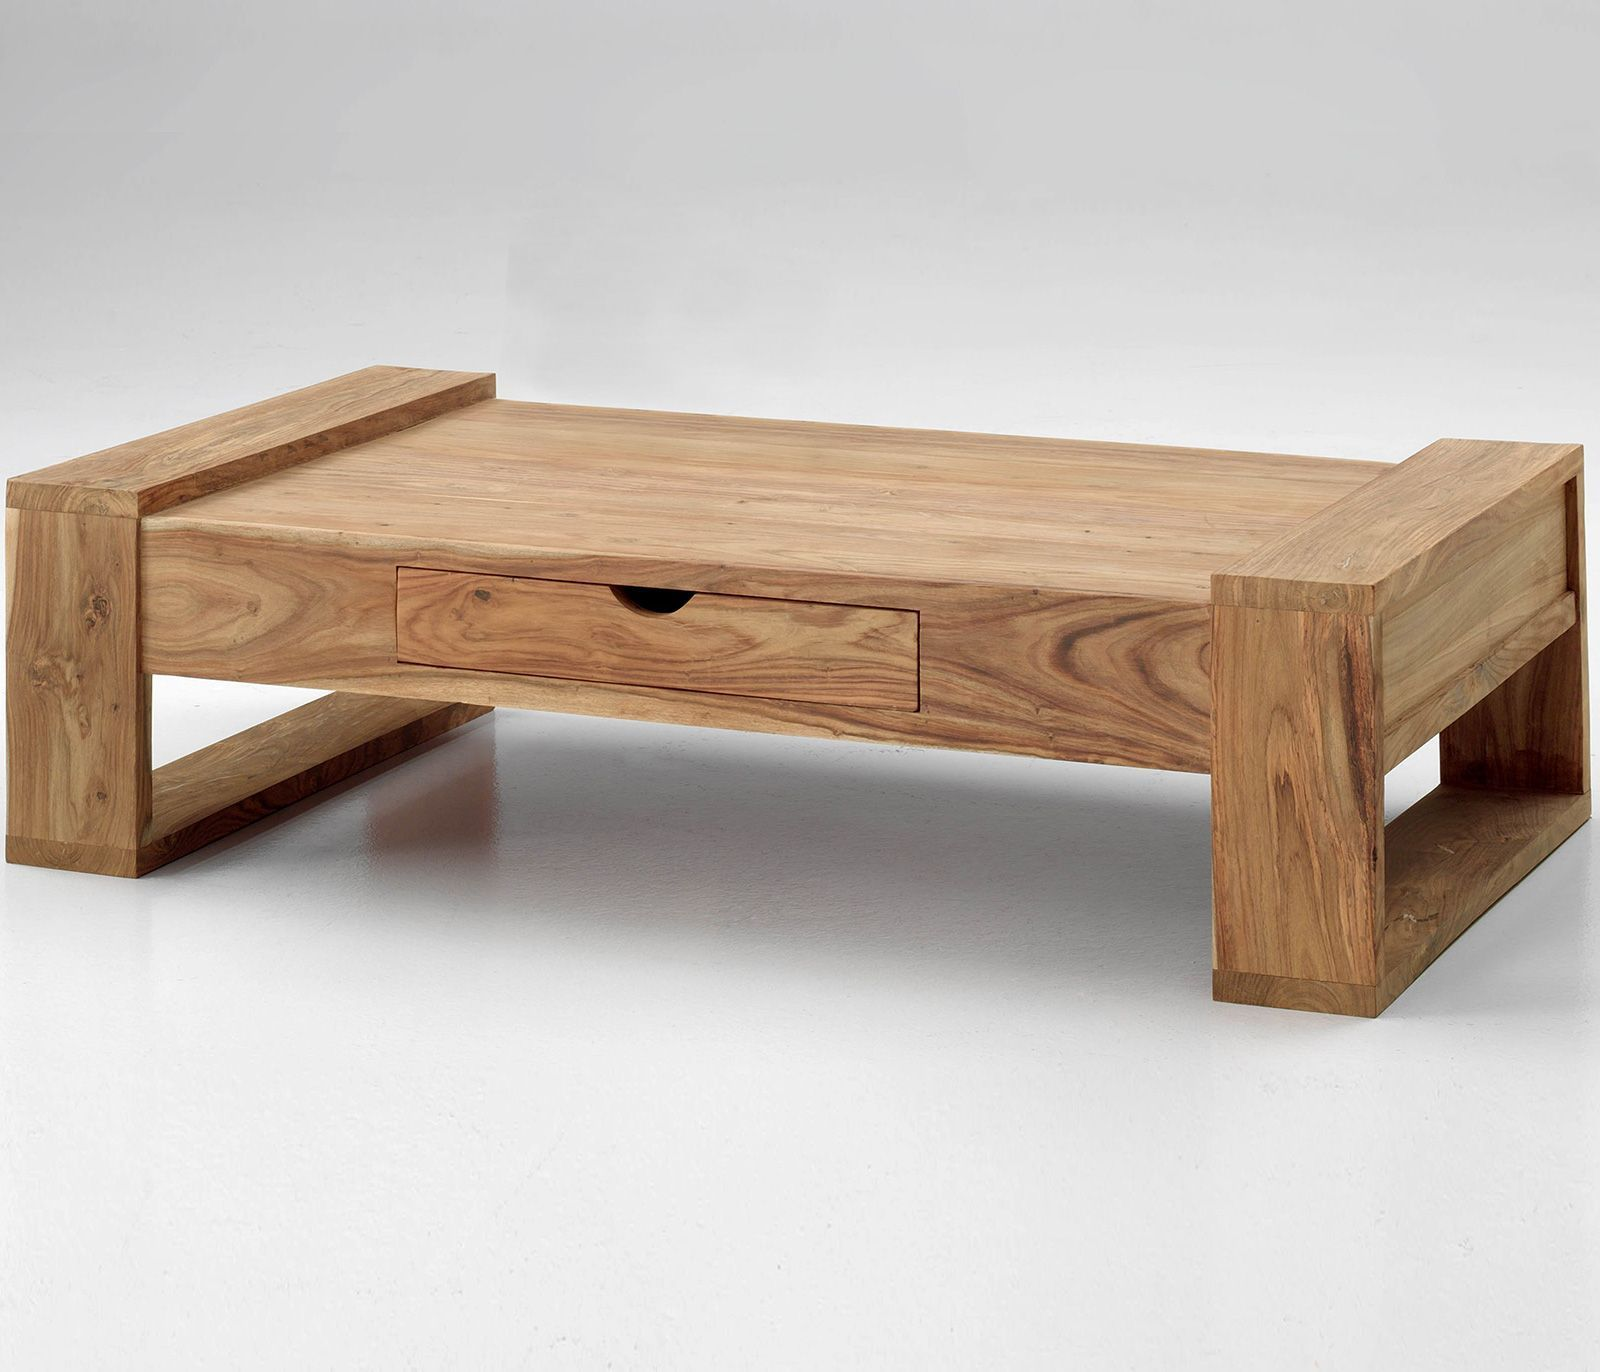 Download wallpaper reclaimed wood coffee table x reclaimed for K furniture coffee table